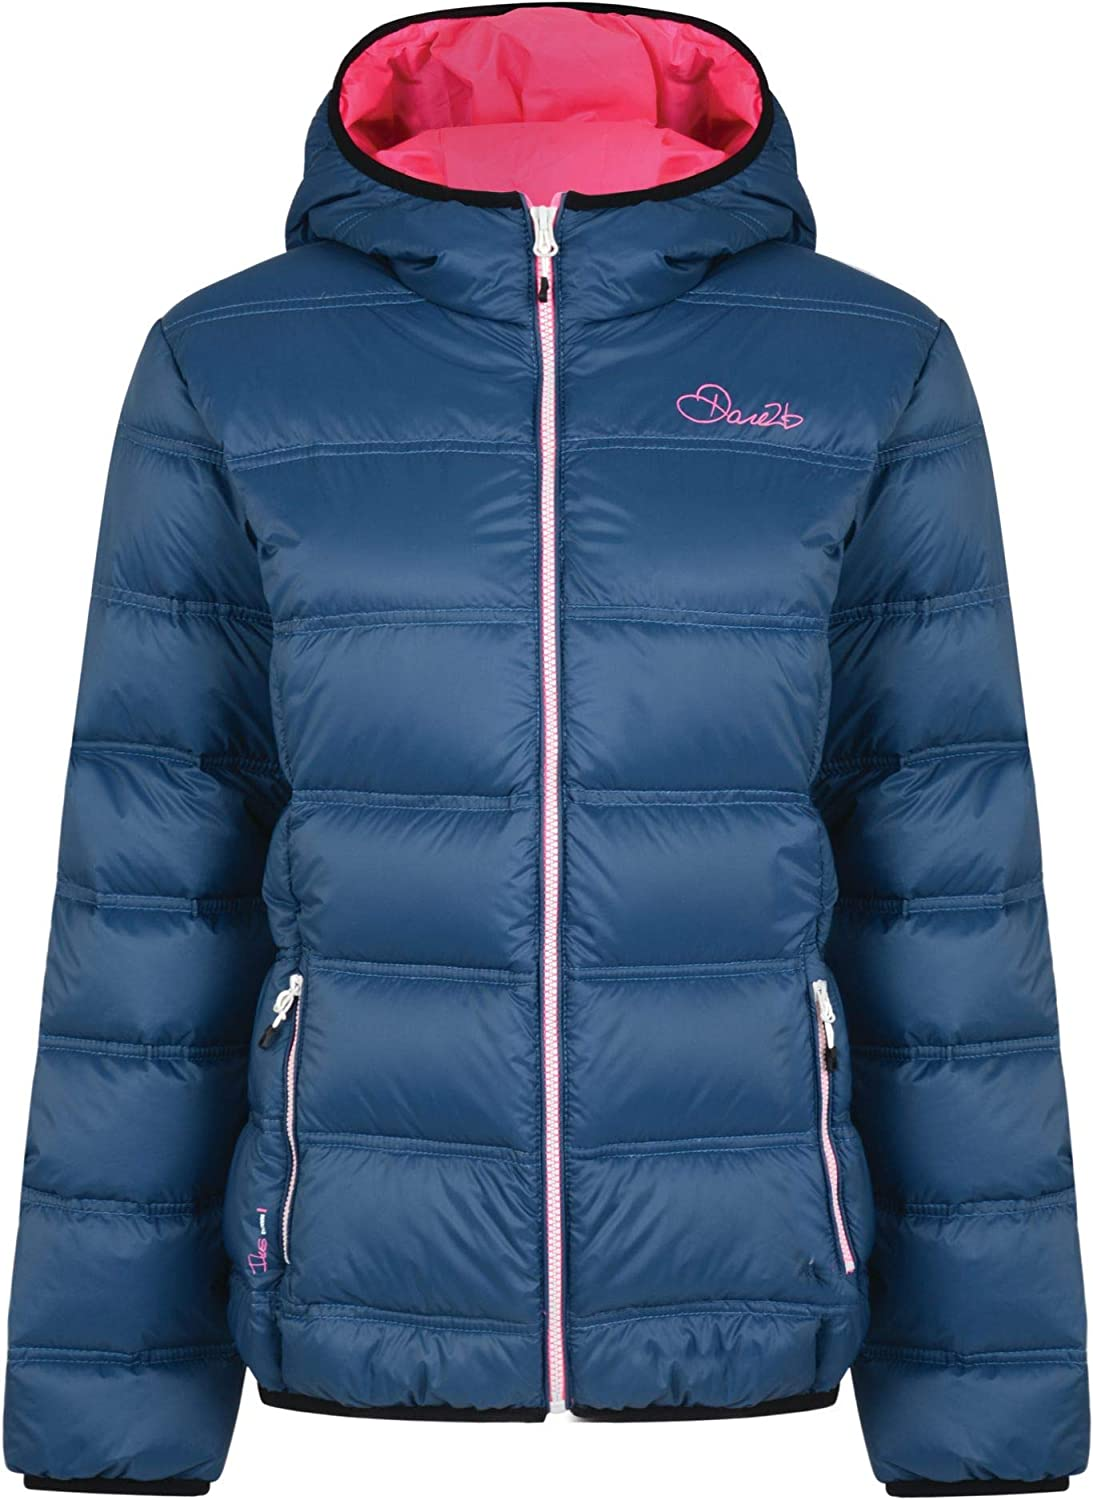 Dare 2b Womens Lowdown Water Repellent Insulated Down Jacket